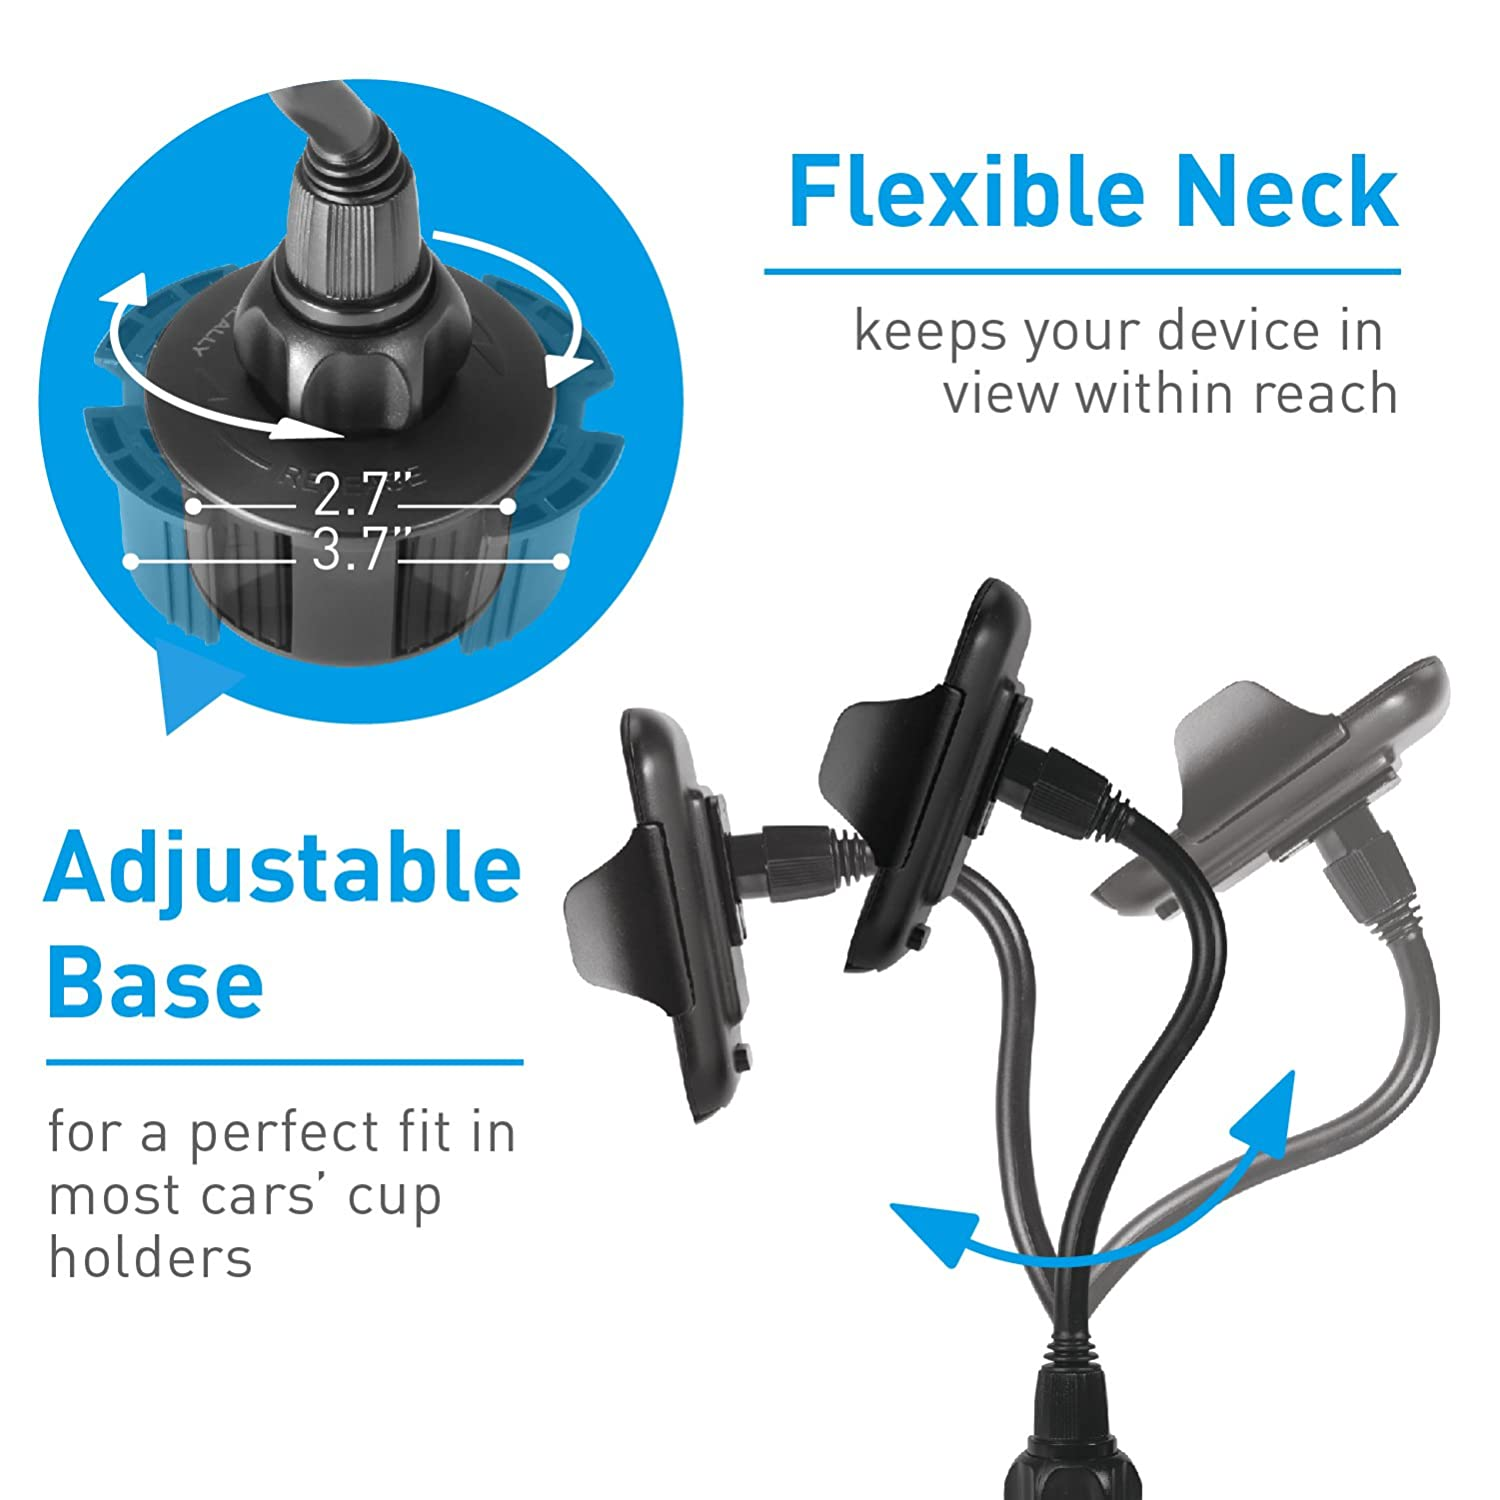 Macally Car Cup Holder Phone Mount with Longer Neck /& 360/° Rotatable Cradle for iPhone X 8 8 Plus 7 7+ 6s 6 SE Samsung Galaxy S9 S9+ S8 S7 Edge S6 Note 5 GPS etc. Smartphones MCUPXL